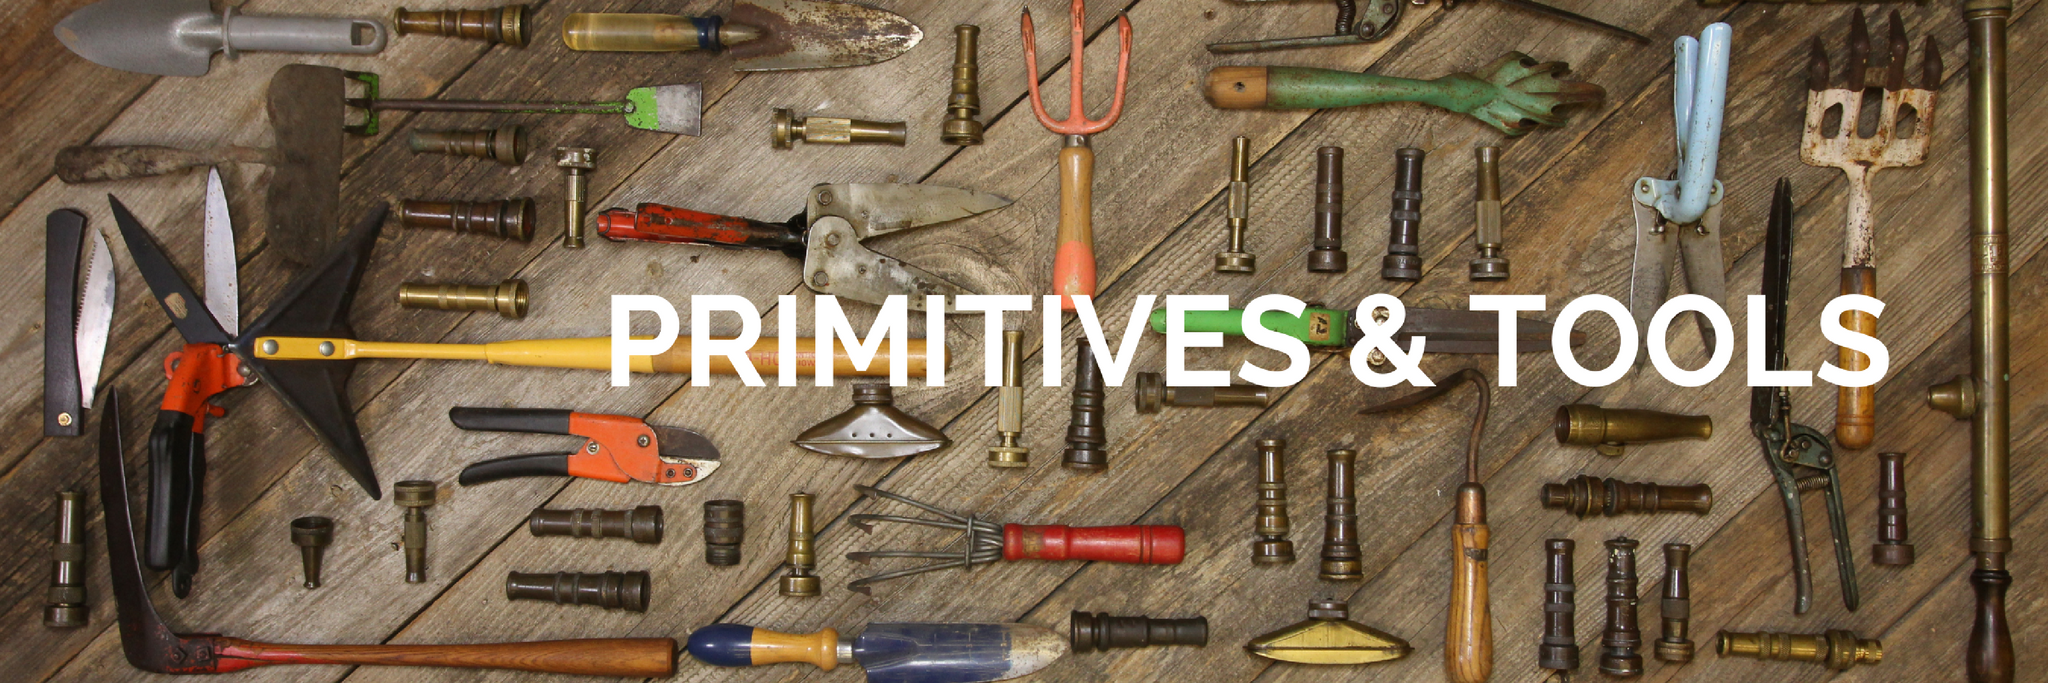 Collection of vintage and antique primitives and tools for sale